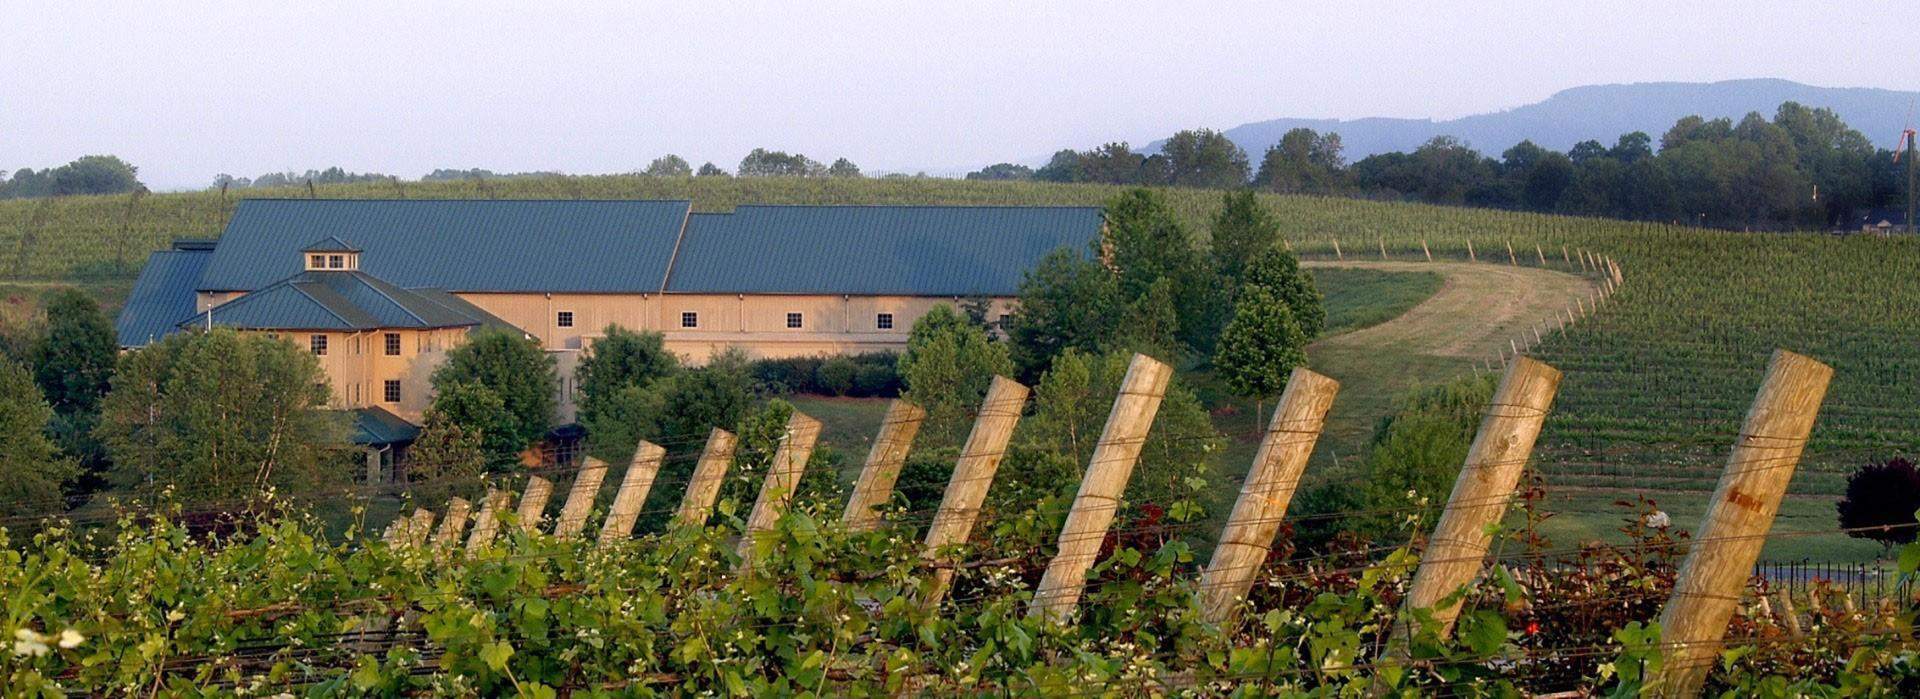 Shelton Vineyards in Surry Co.